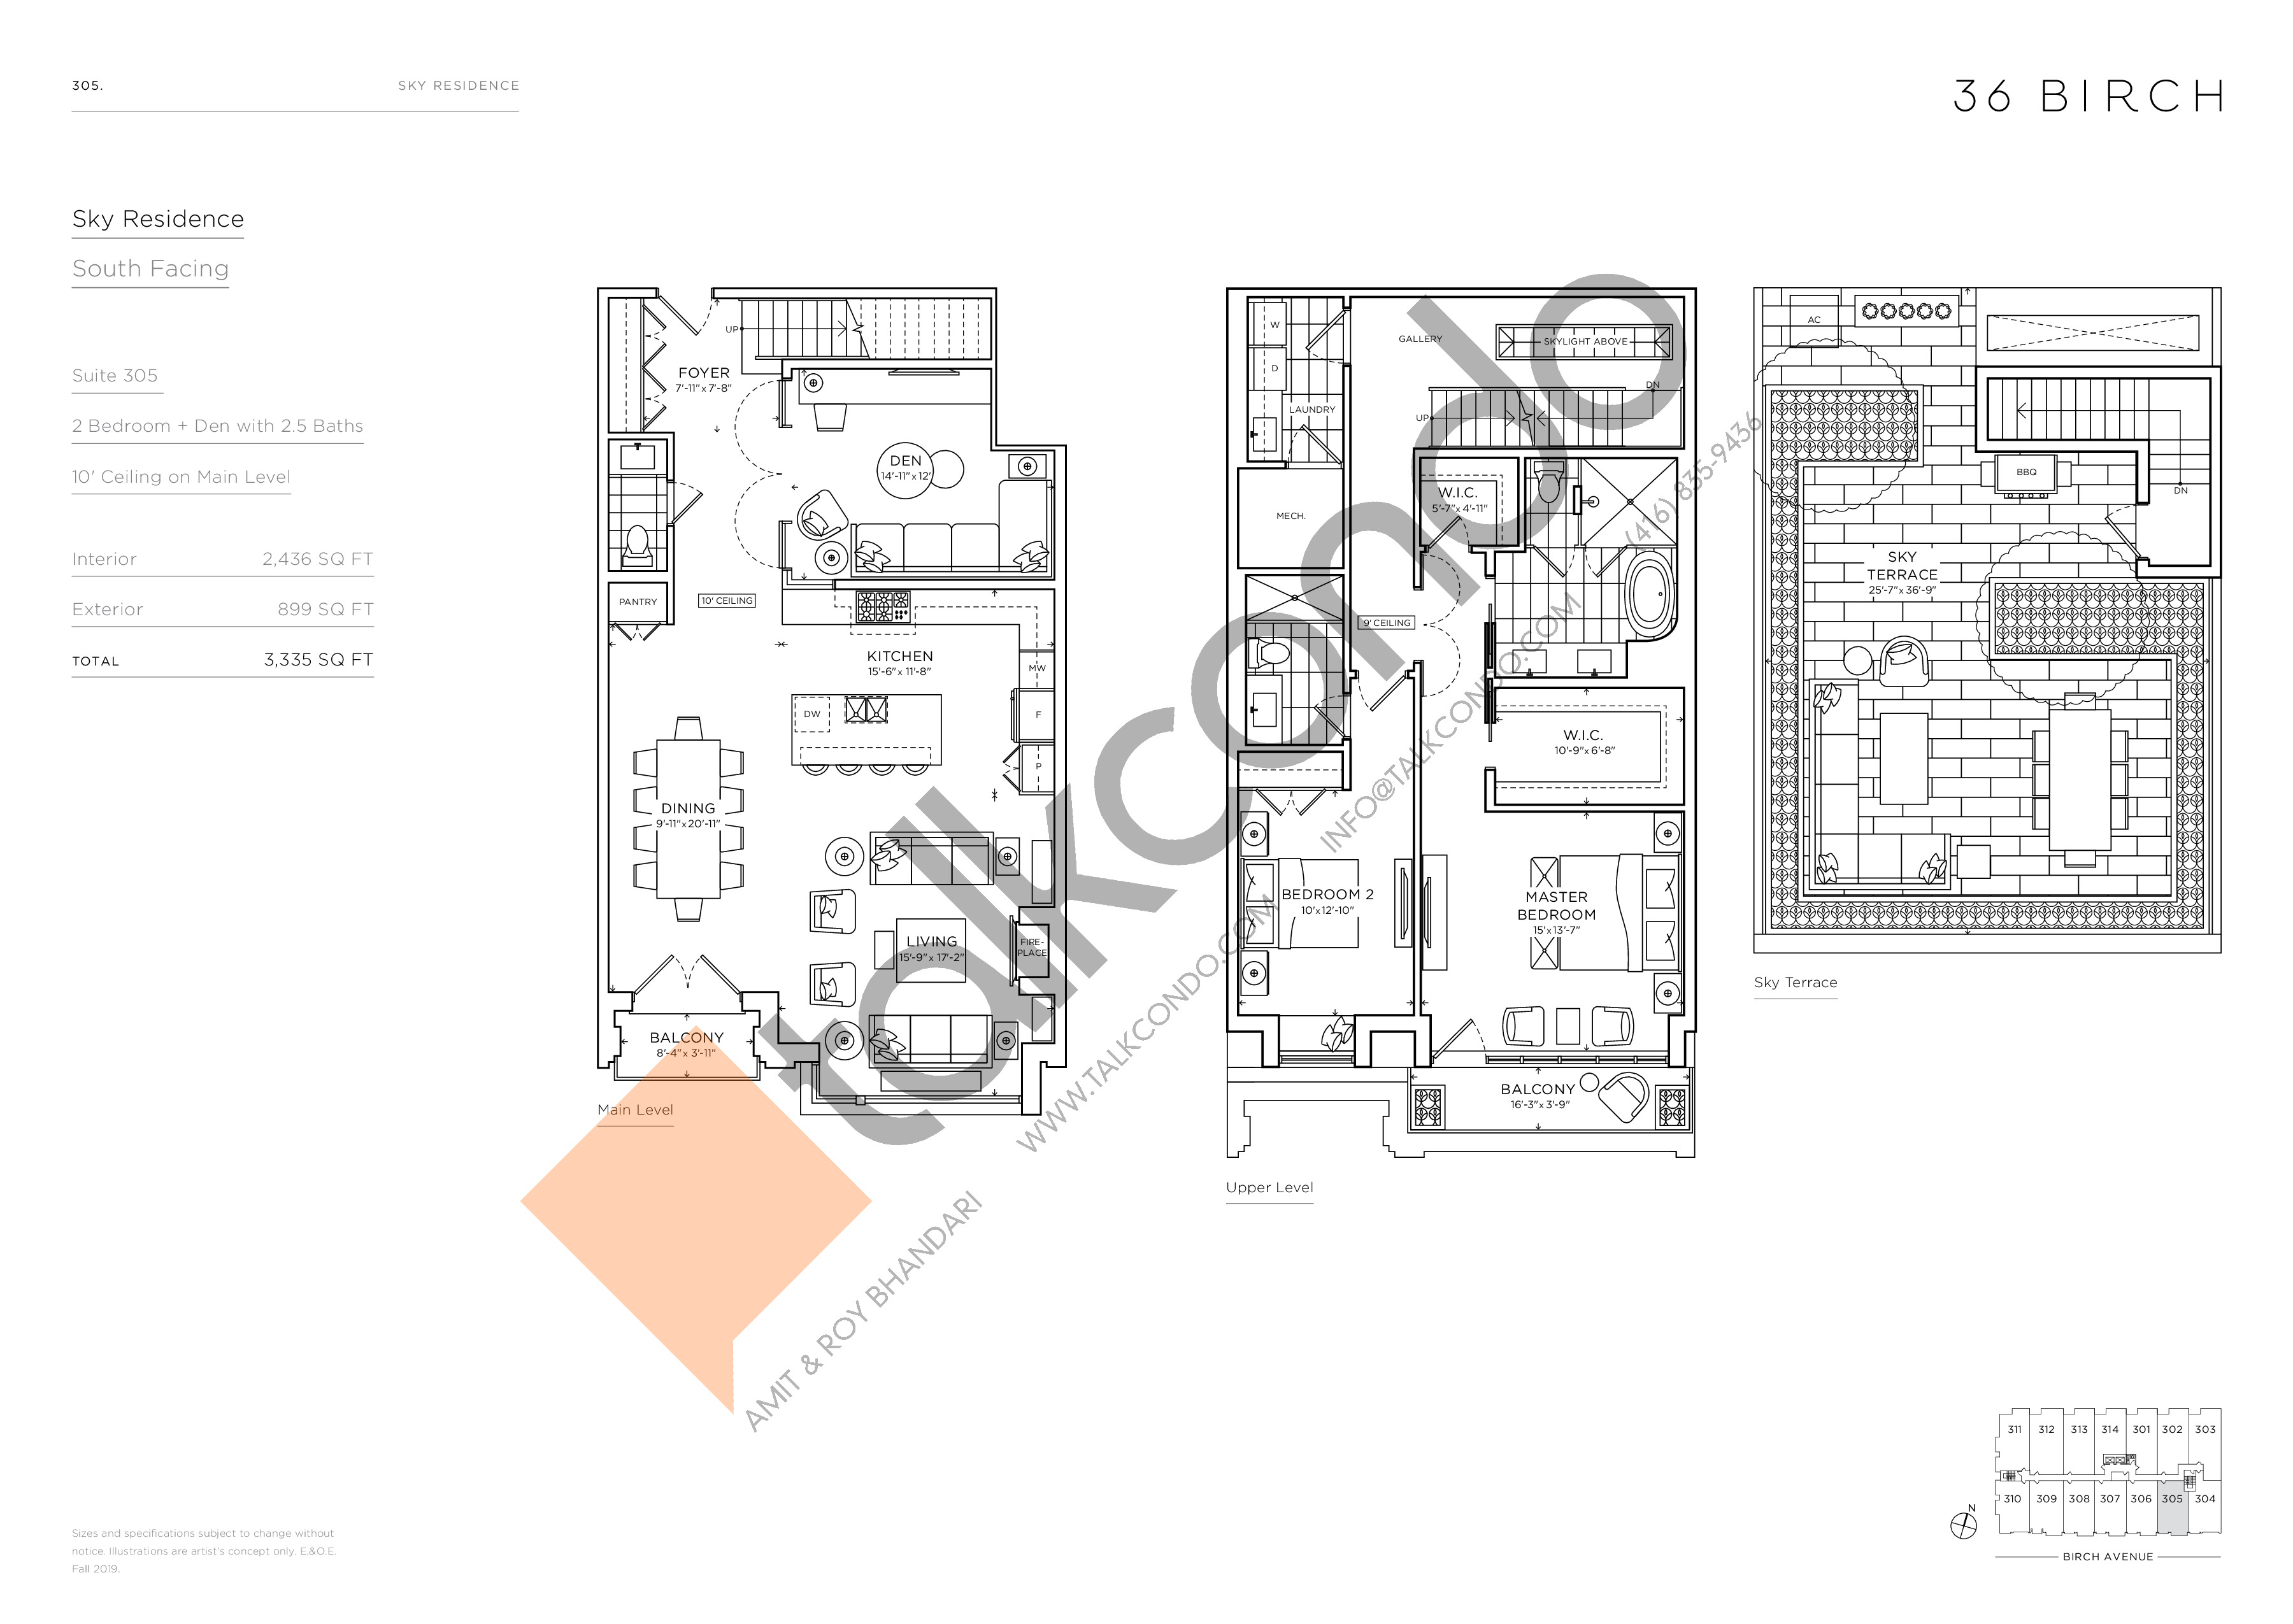 305 - Sky Residence Floor Plan at 36 Birch Condos - 2436 sq.ft